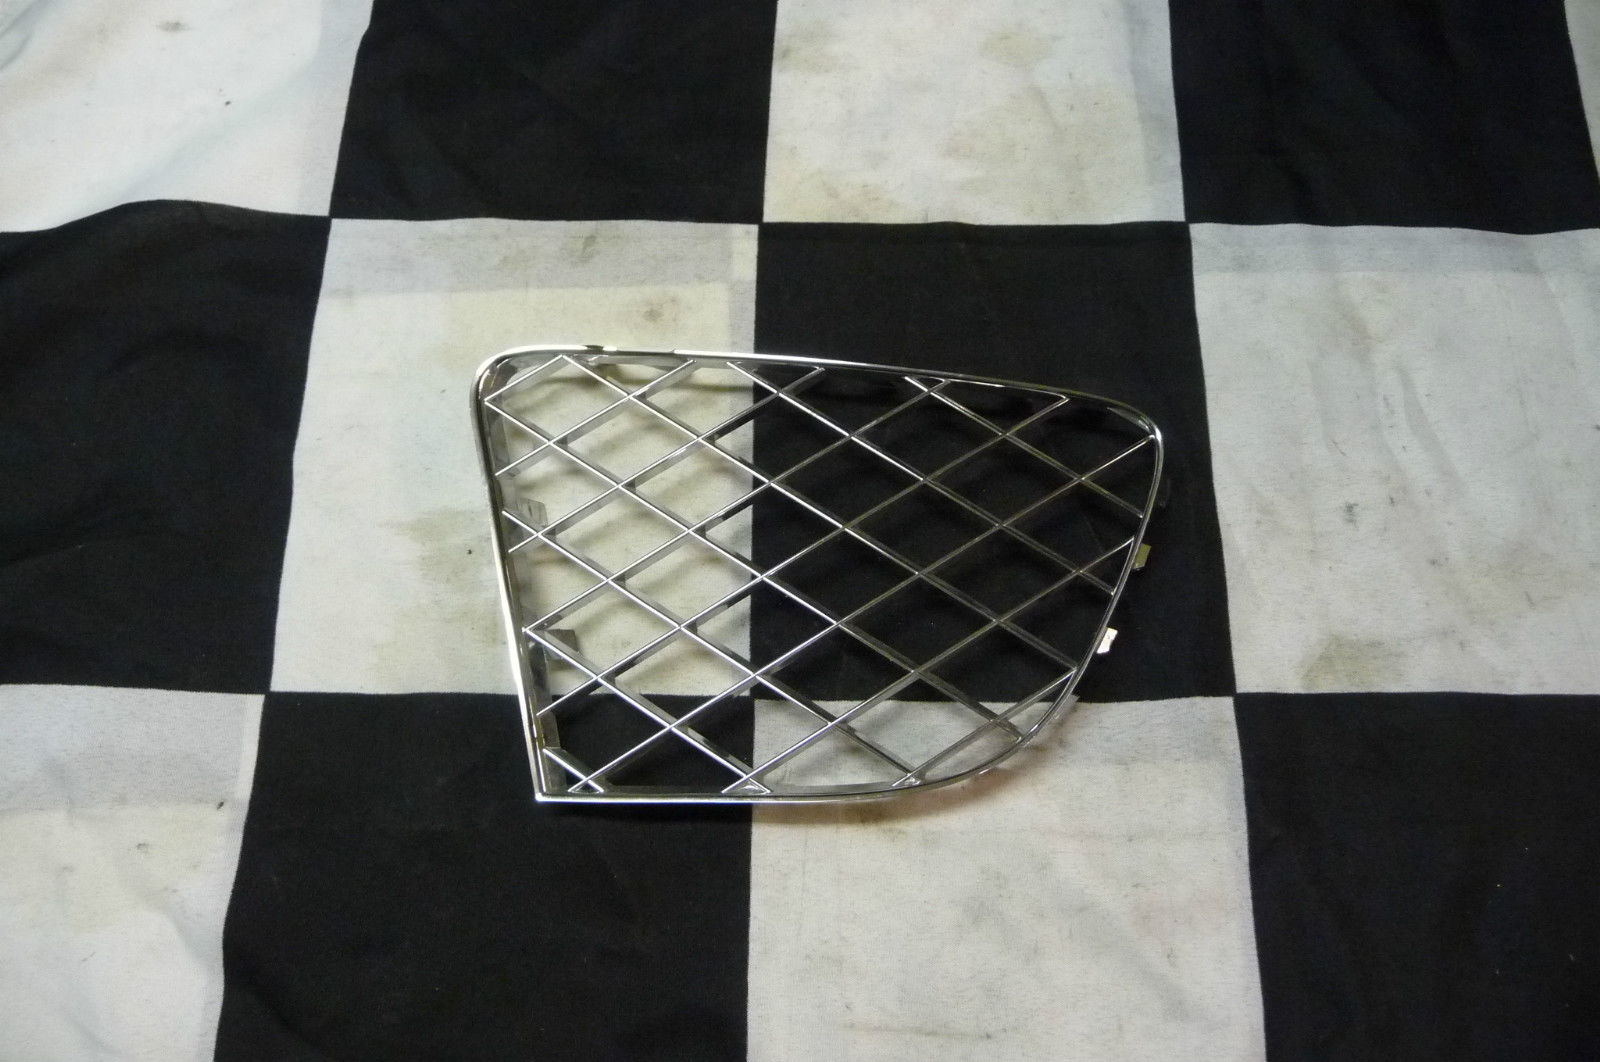 BENTLEY GT GTC W12 Bumper Grille Grill Front Right Passenger Chrome 3W3807684JU - Used Auto Parts Store | LA Global Parts